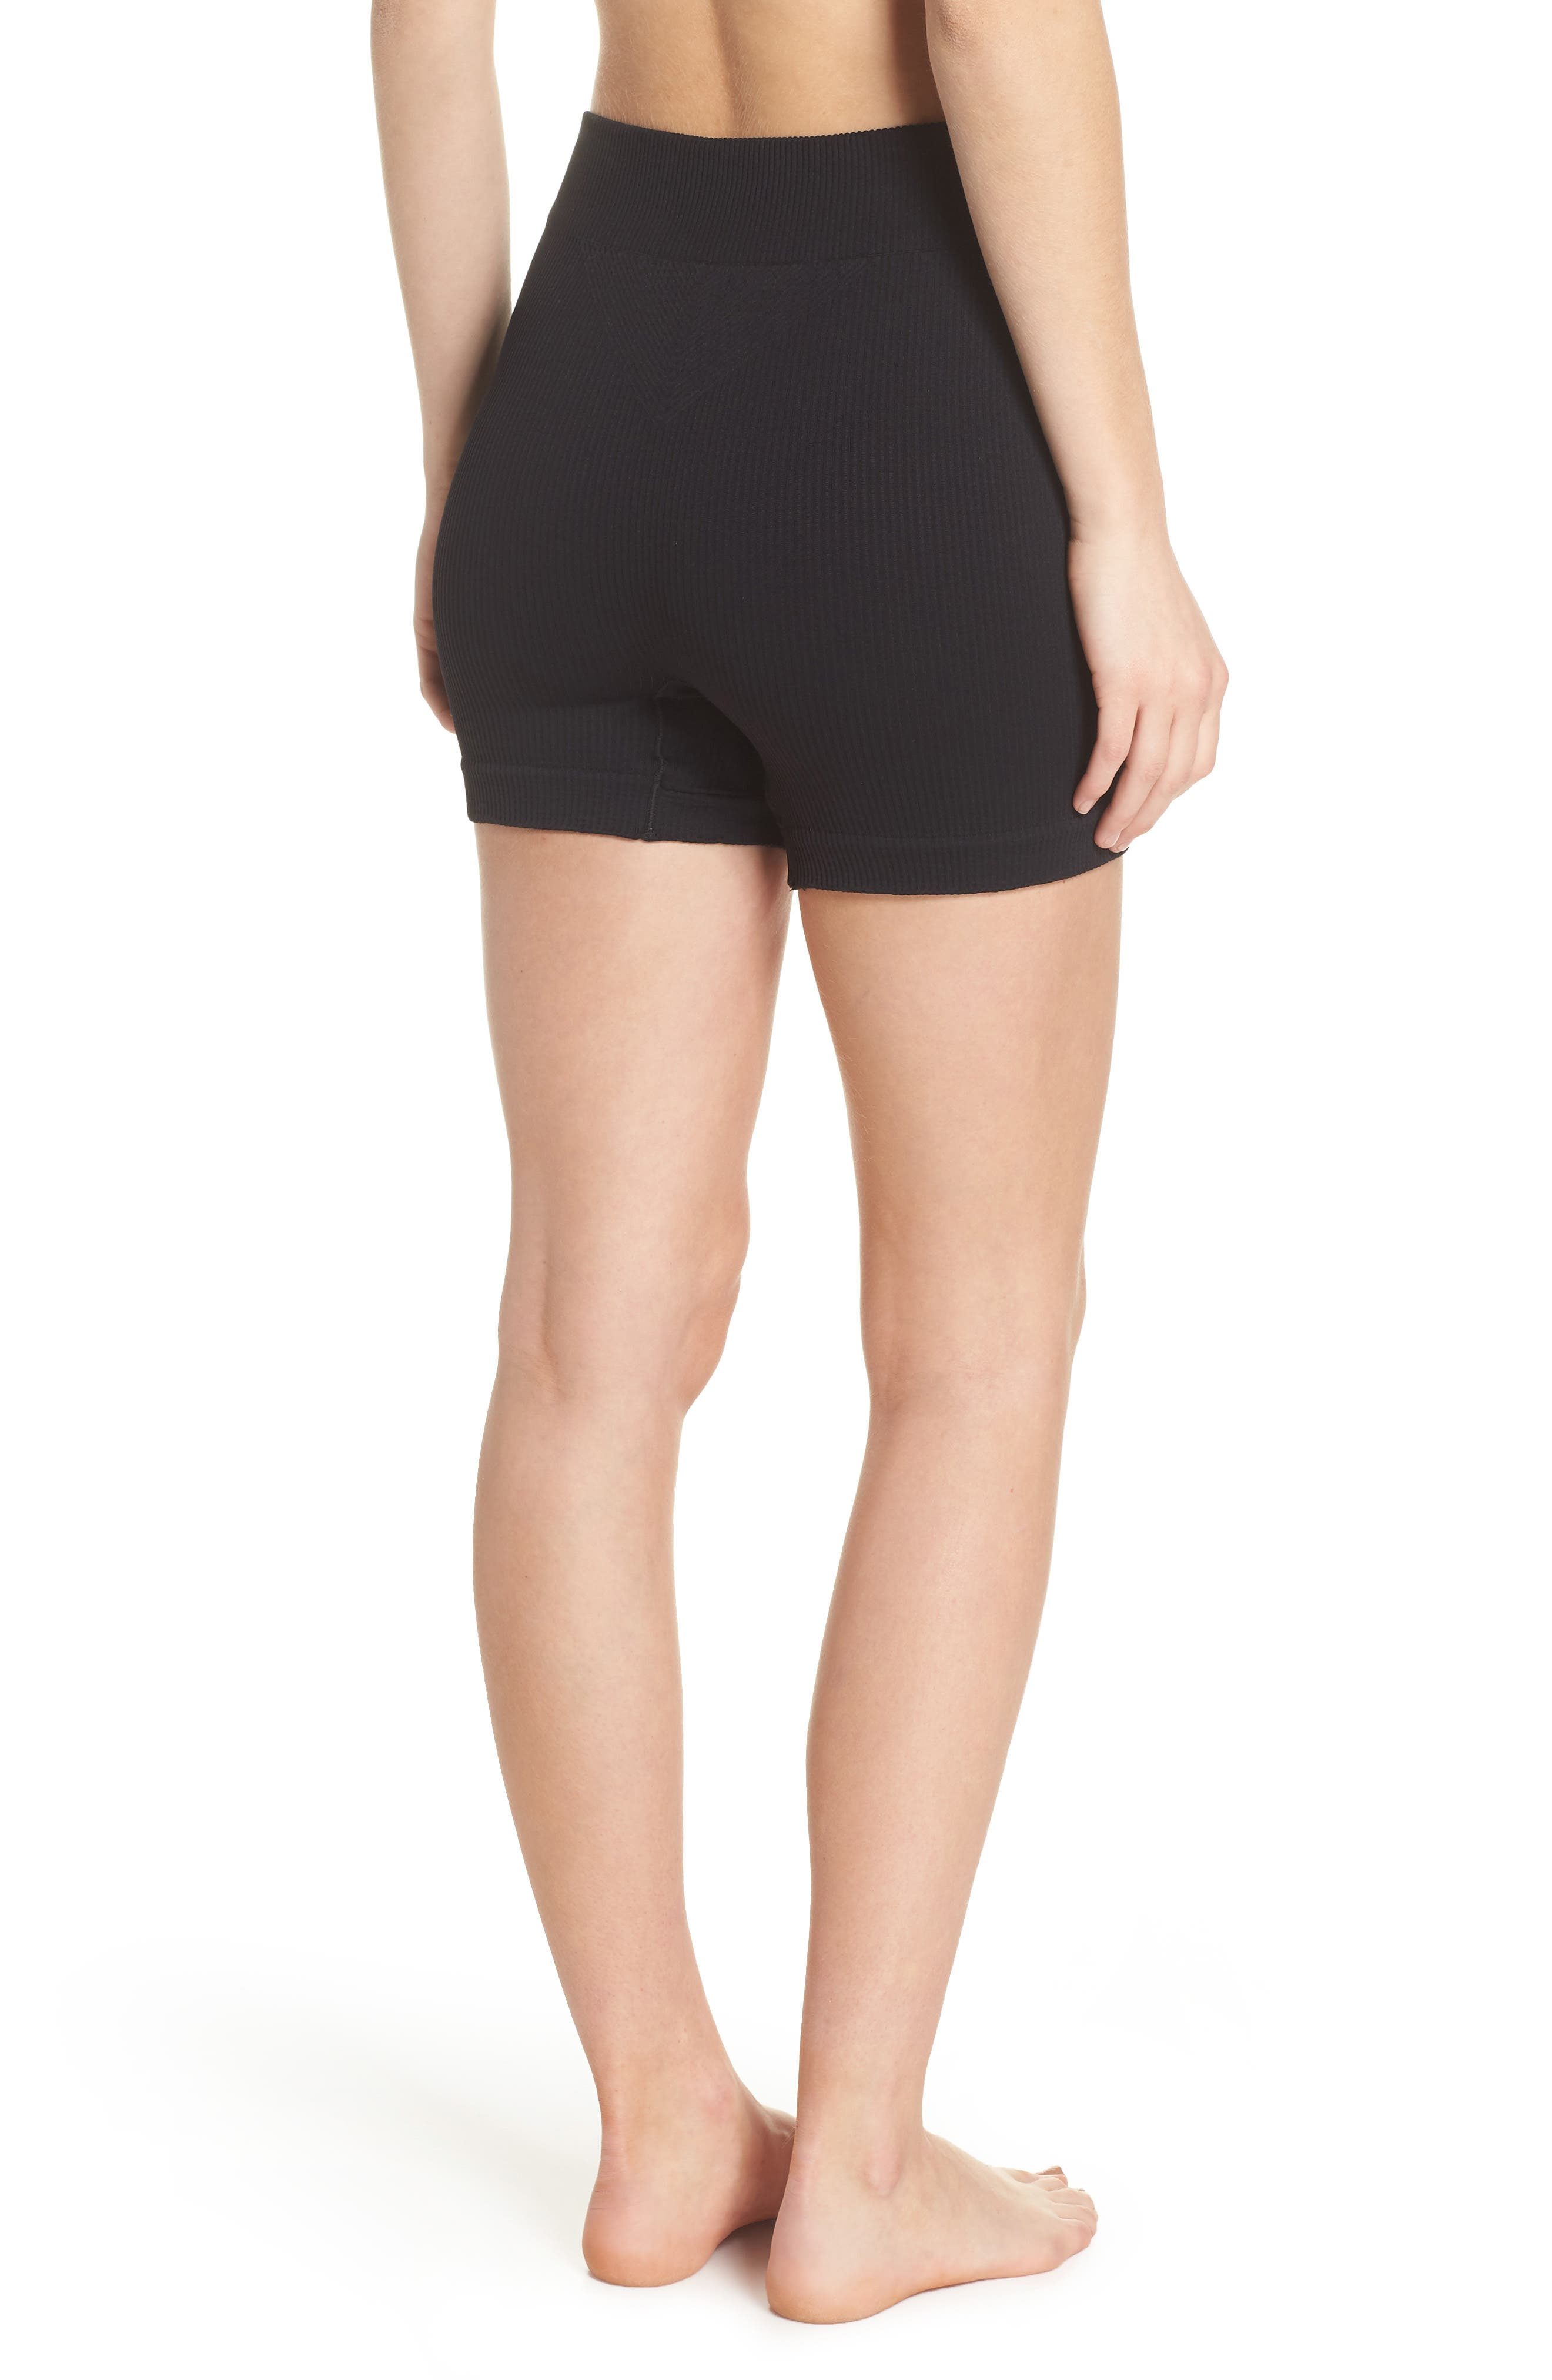 Free People Seamless Shorts,                             Alternate thumbnail 2, color,                             Black